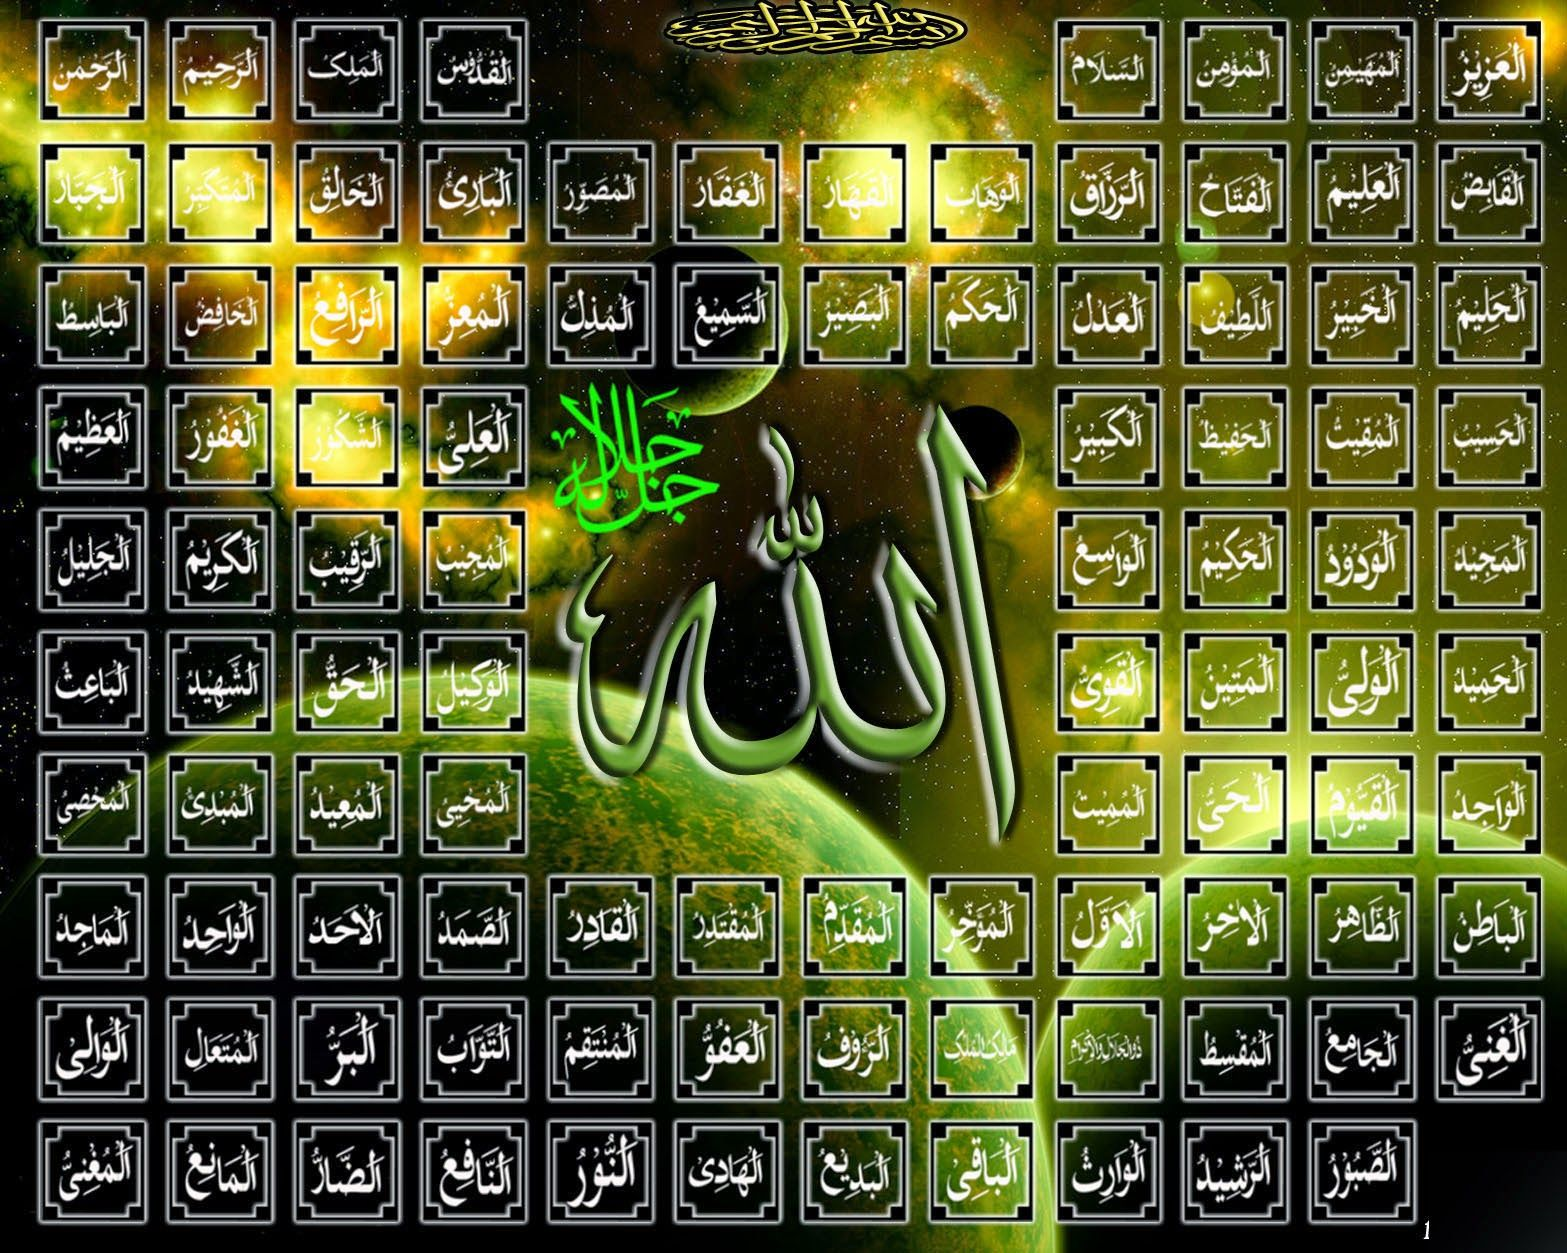 Free 99 Names of Allah Wallpapers app APK Download For Android